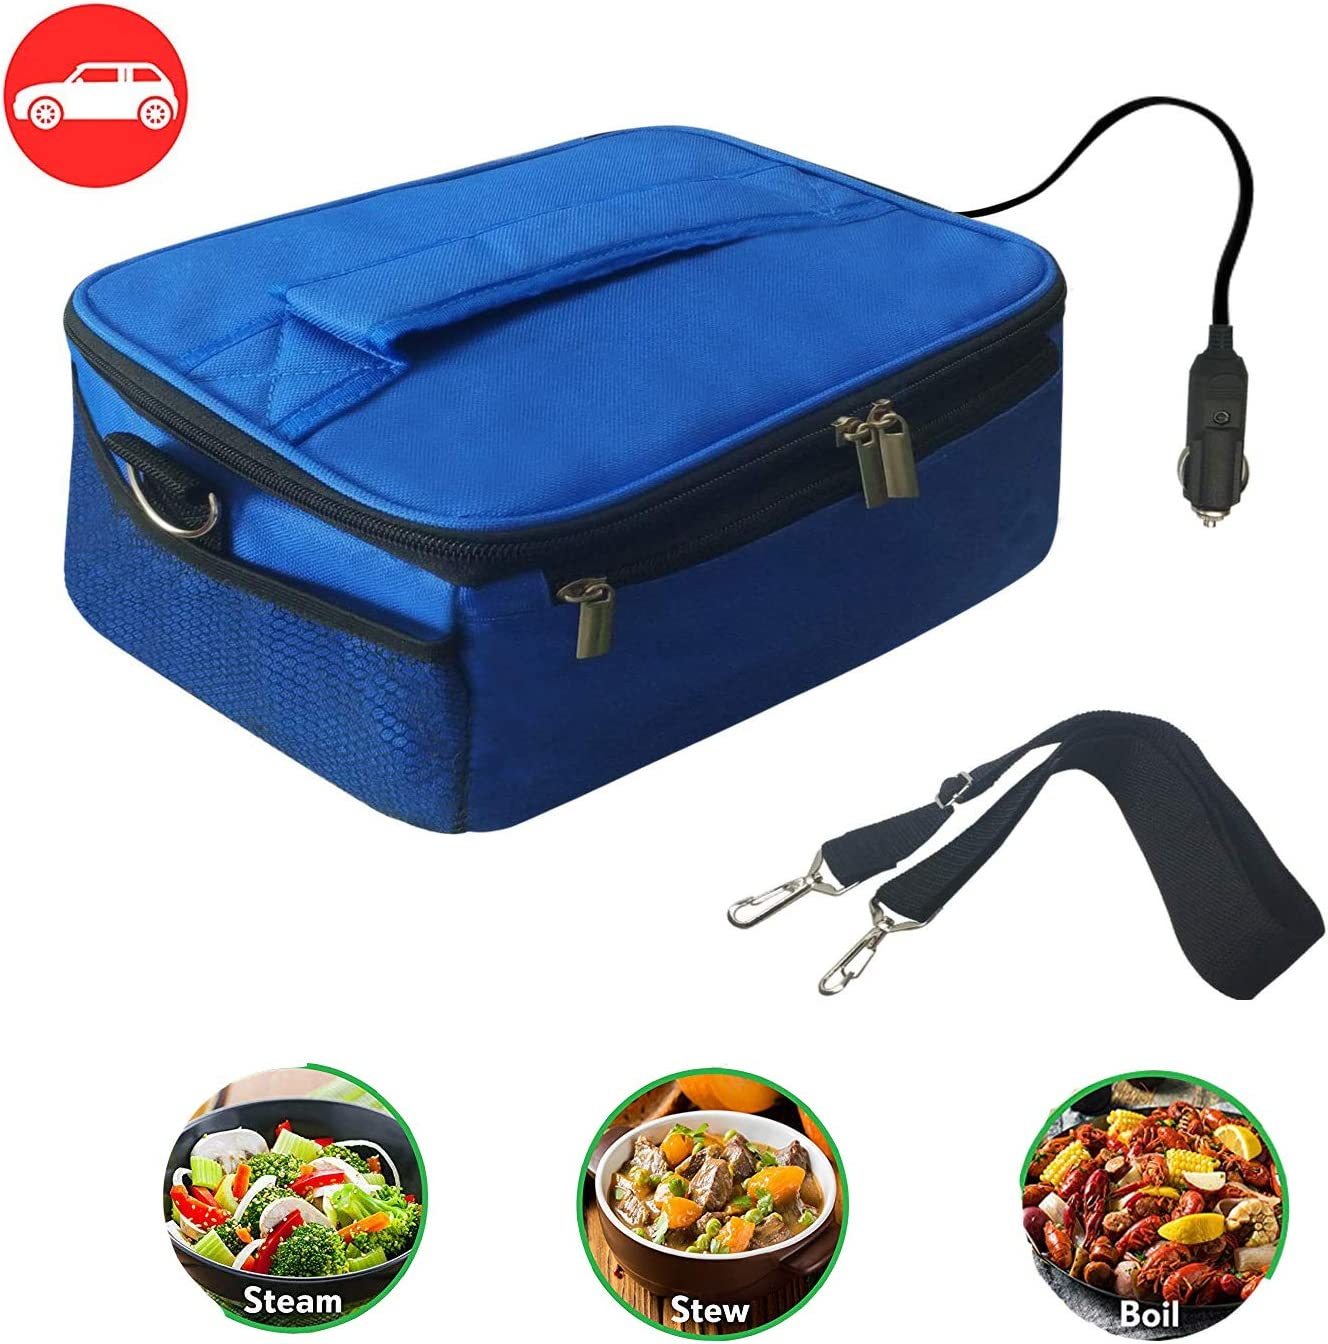 Portable Oven 12V Personal Food Warmer for Prepared Meals Lunch Warmer Reheating at work For Driving, Food Warmer with Lunch Bag for Car 12V Car Oven Portable(Blue)